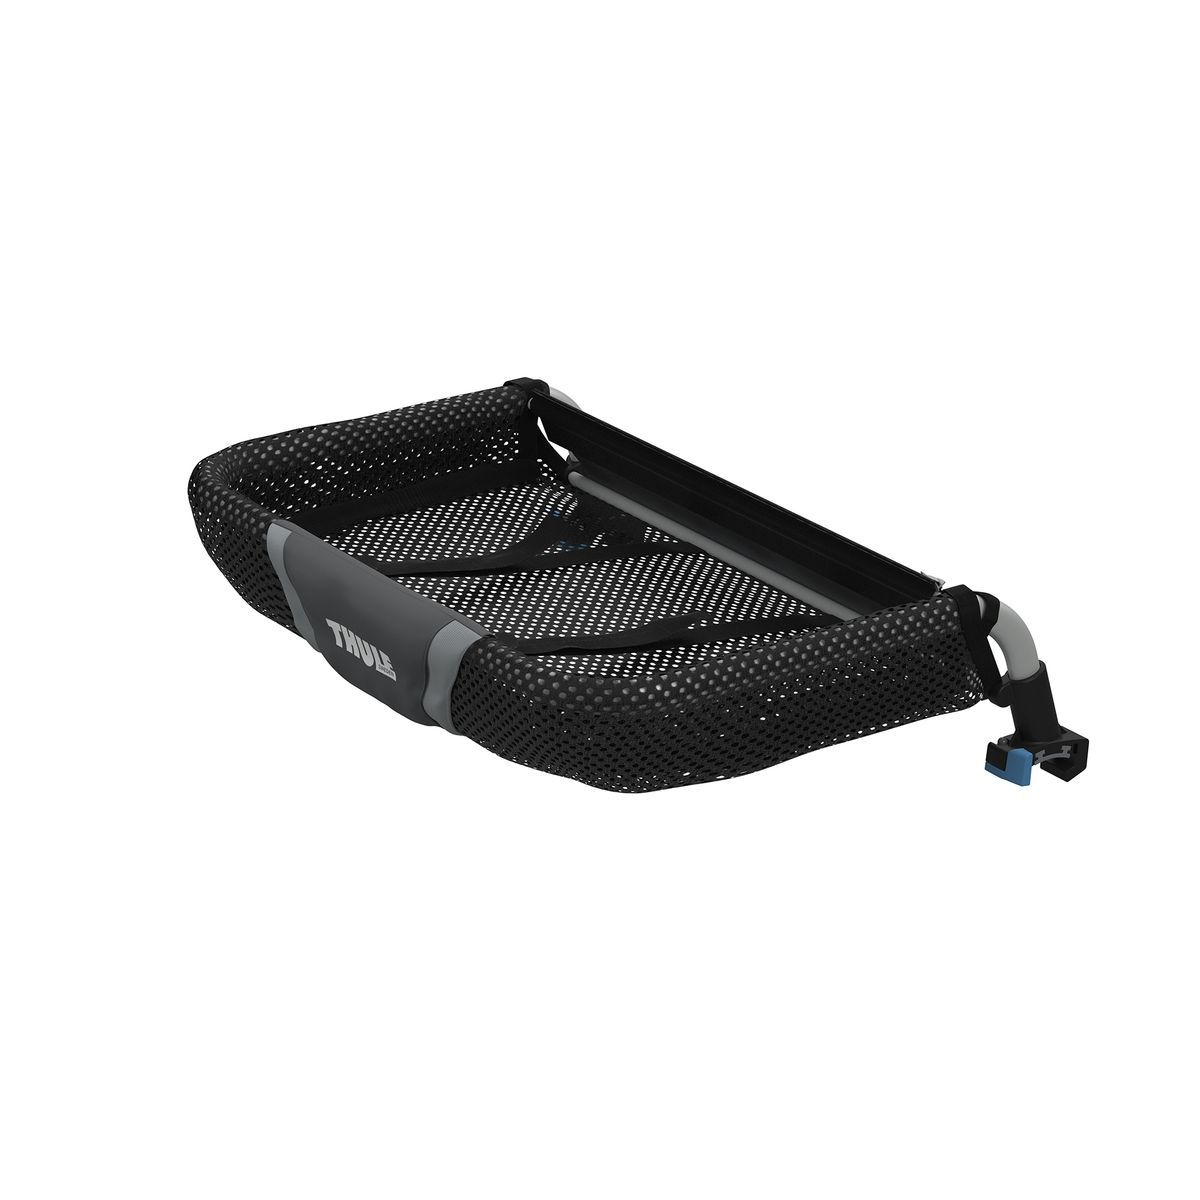 Thule Chariot Cargo Rack | bike_trailers_component